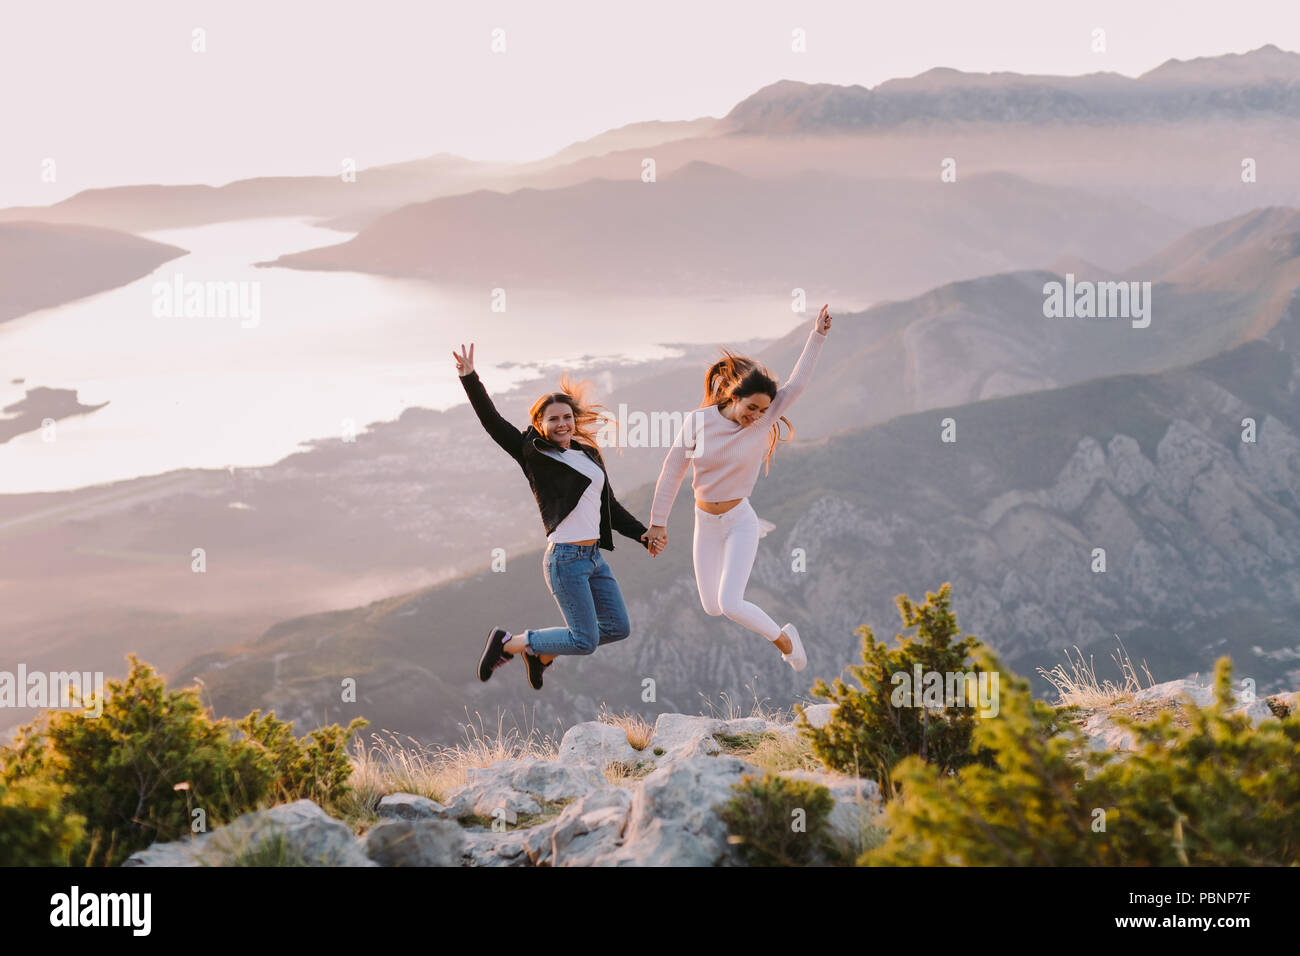 two girls travel in mountains at sunset with beautiful view. Picturesque  landscape background. - 66a458bf360bd